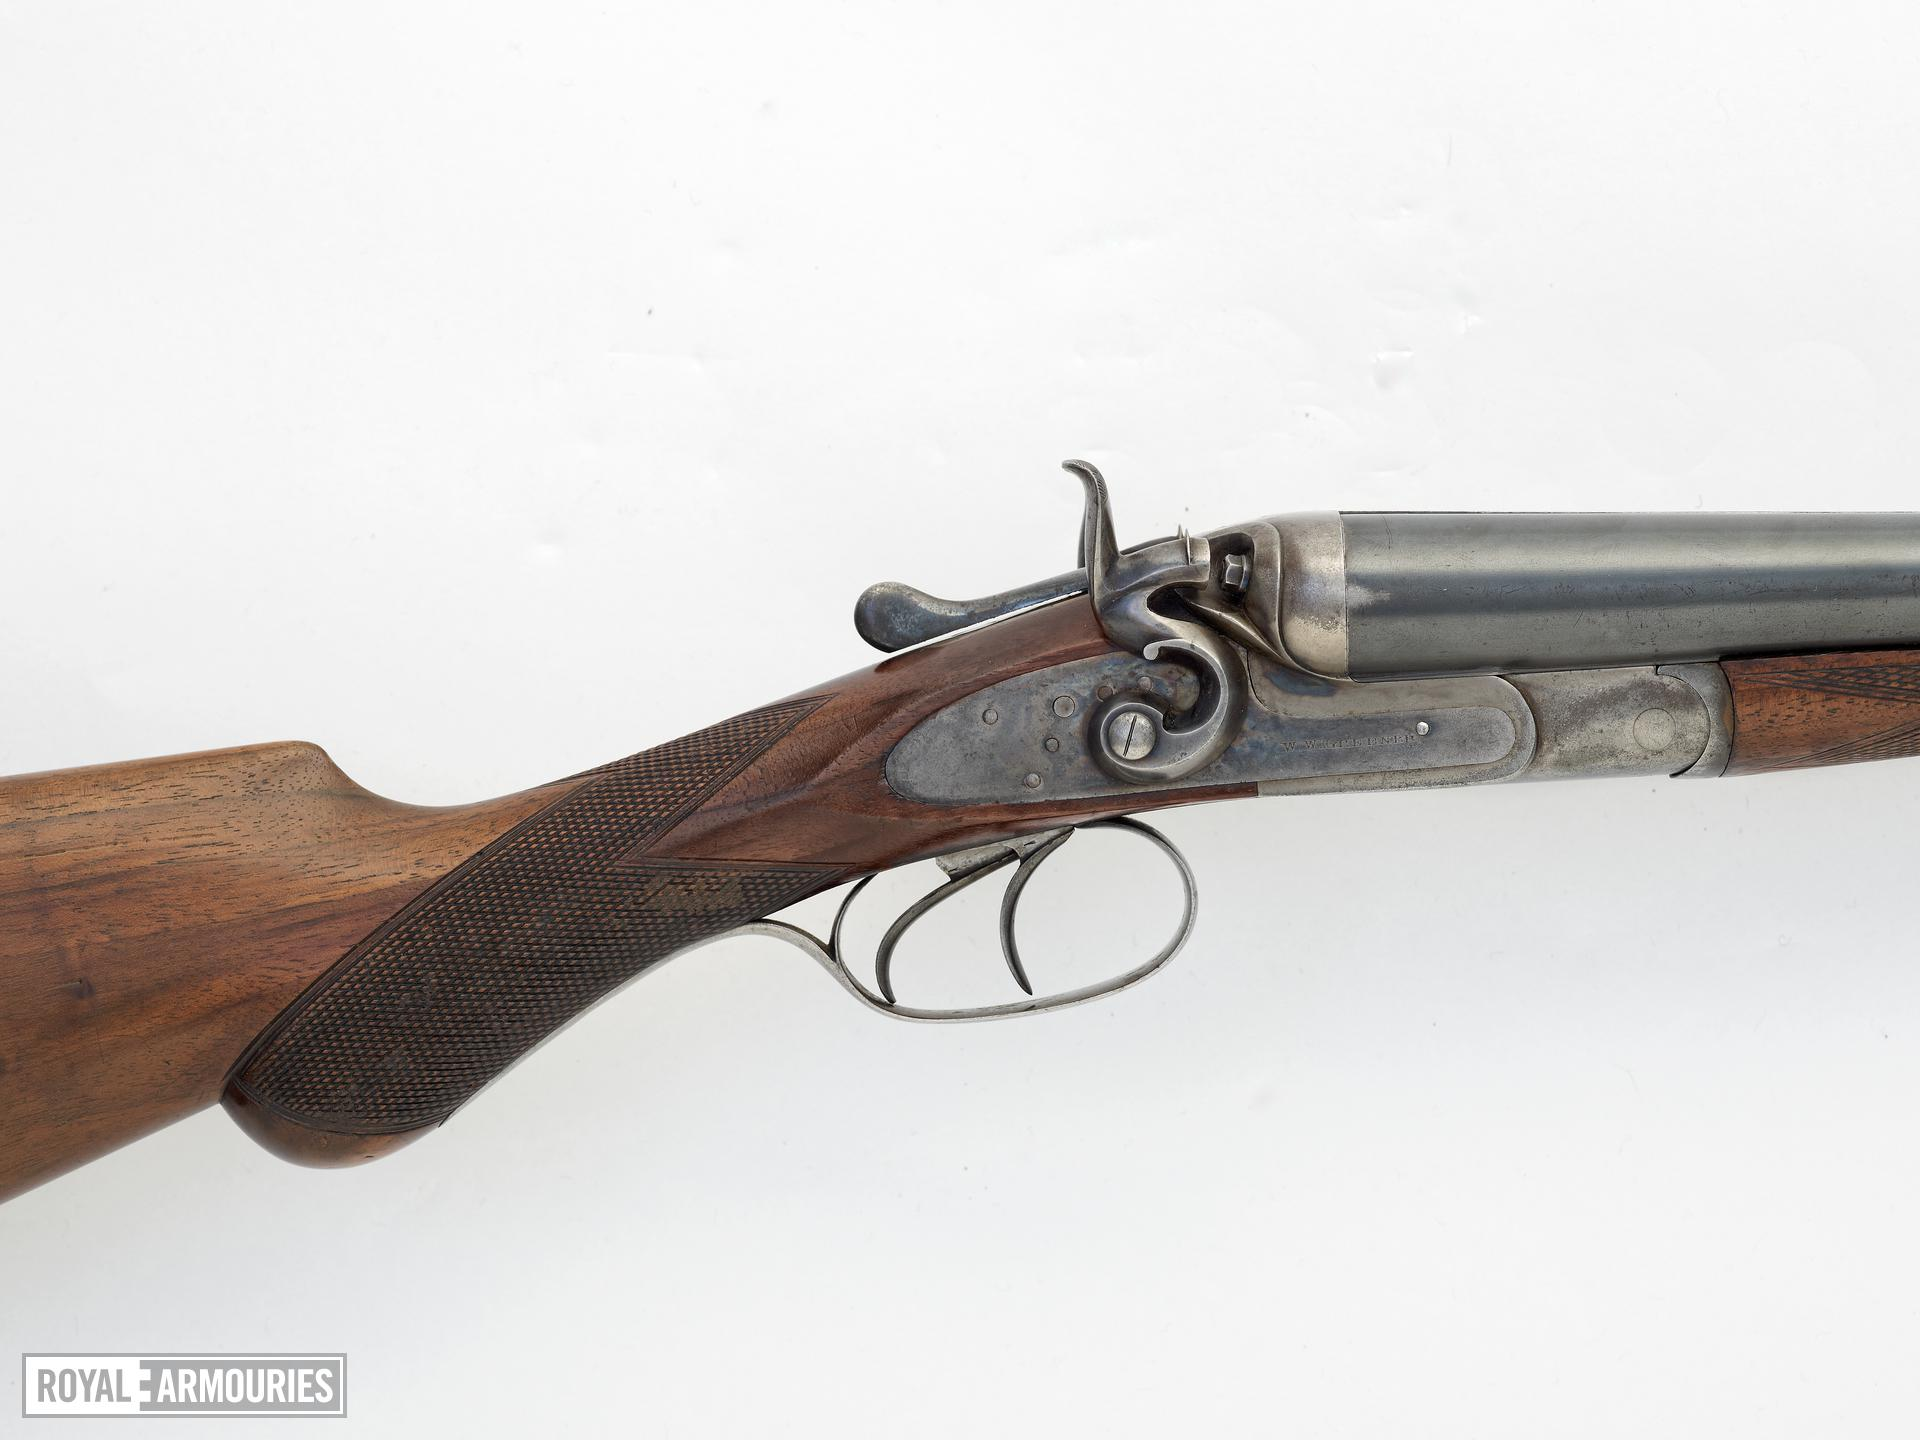 Centrefire breech-loading double-barrelled shotgun - W. W. Greener